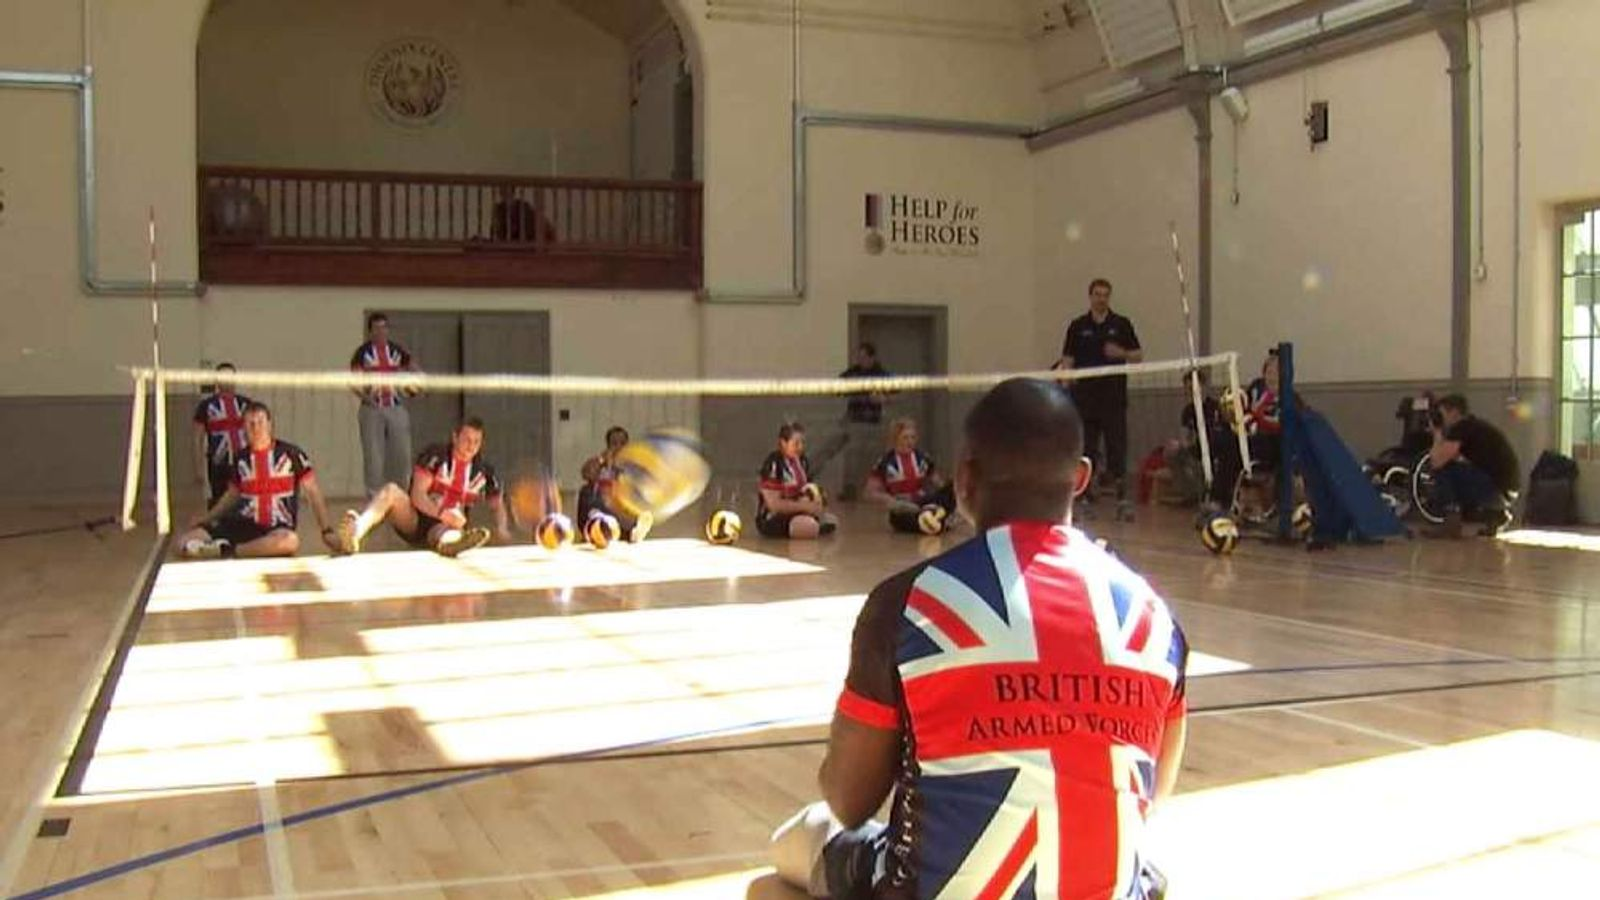 Help for Heroes soldiers practice for Warrior Games in US